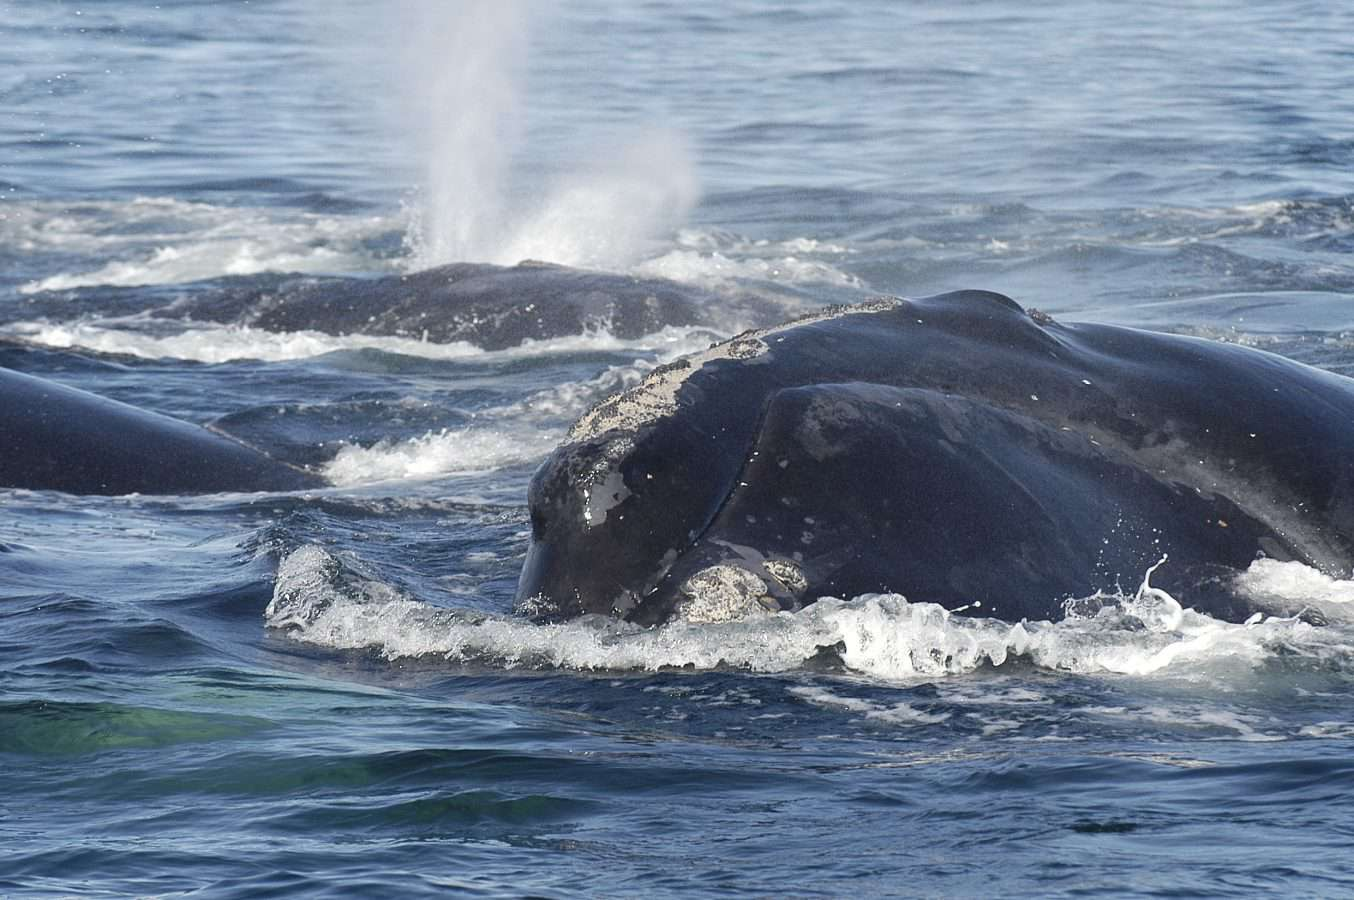 comet whale